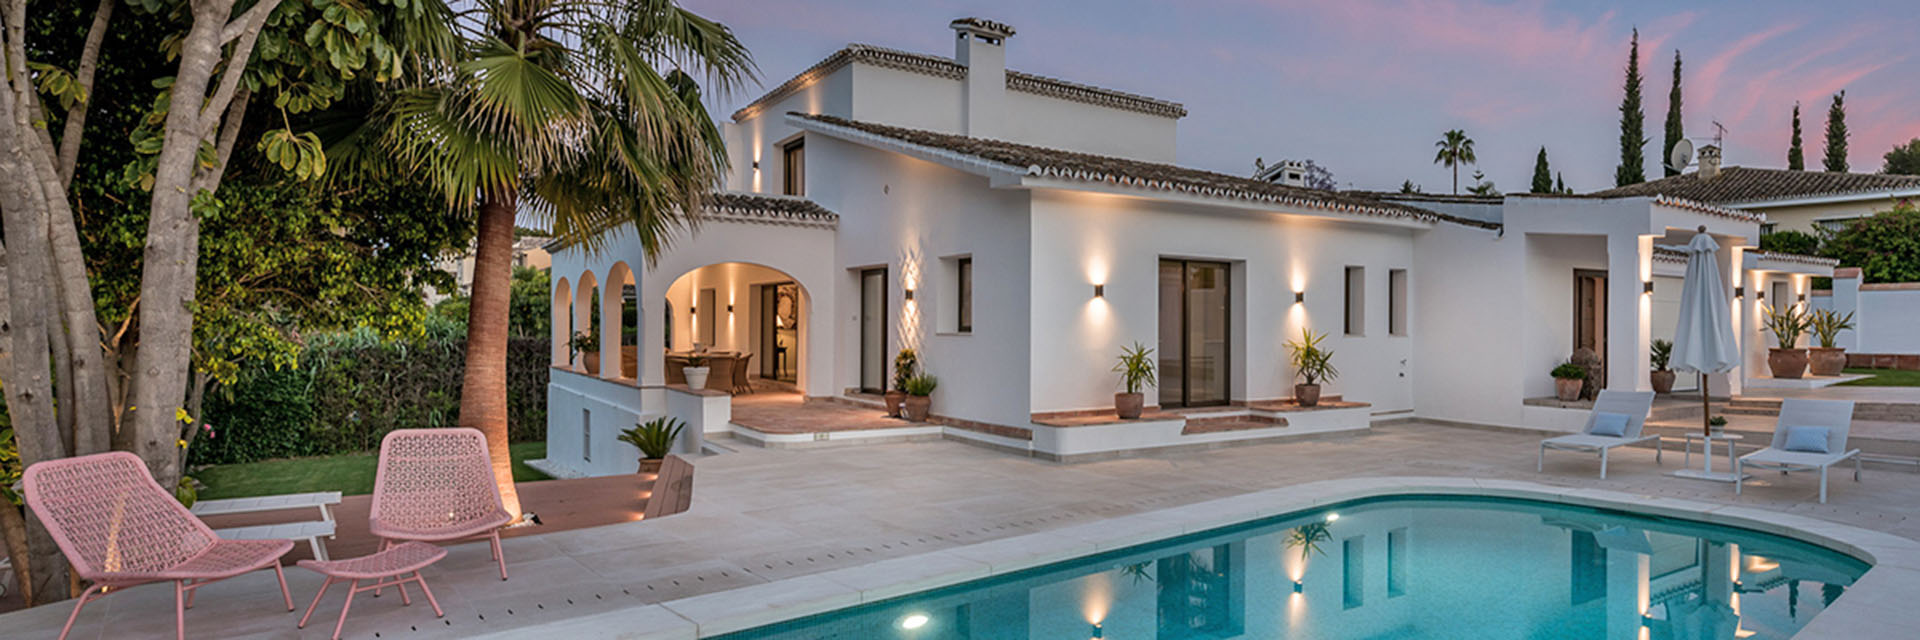 Beautiful fully renovated villa, pool and outdoor area in Guadalmina, Marbella